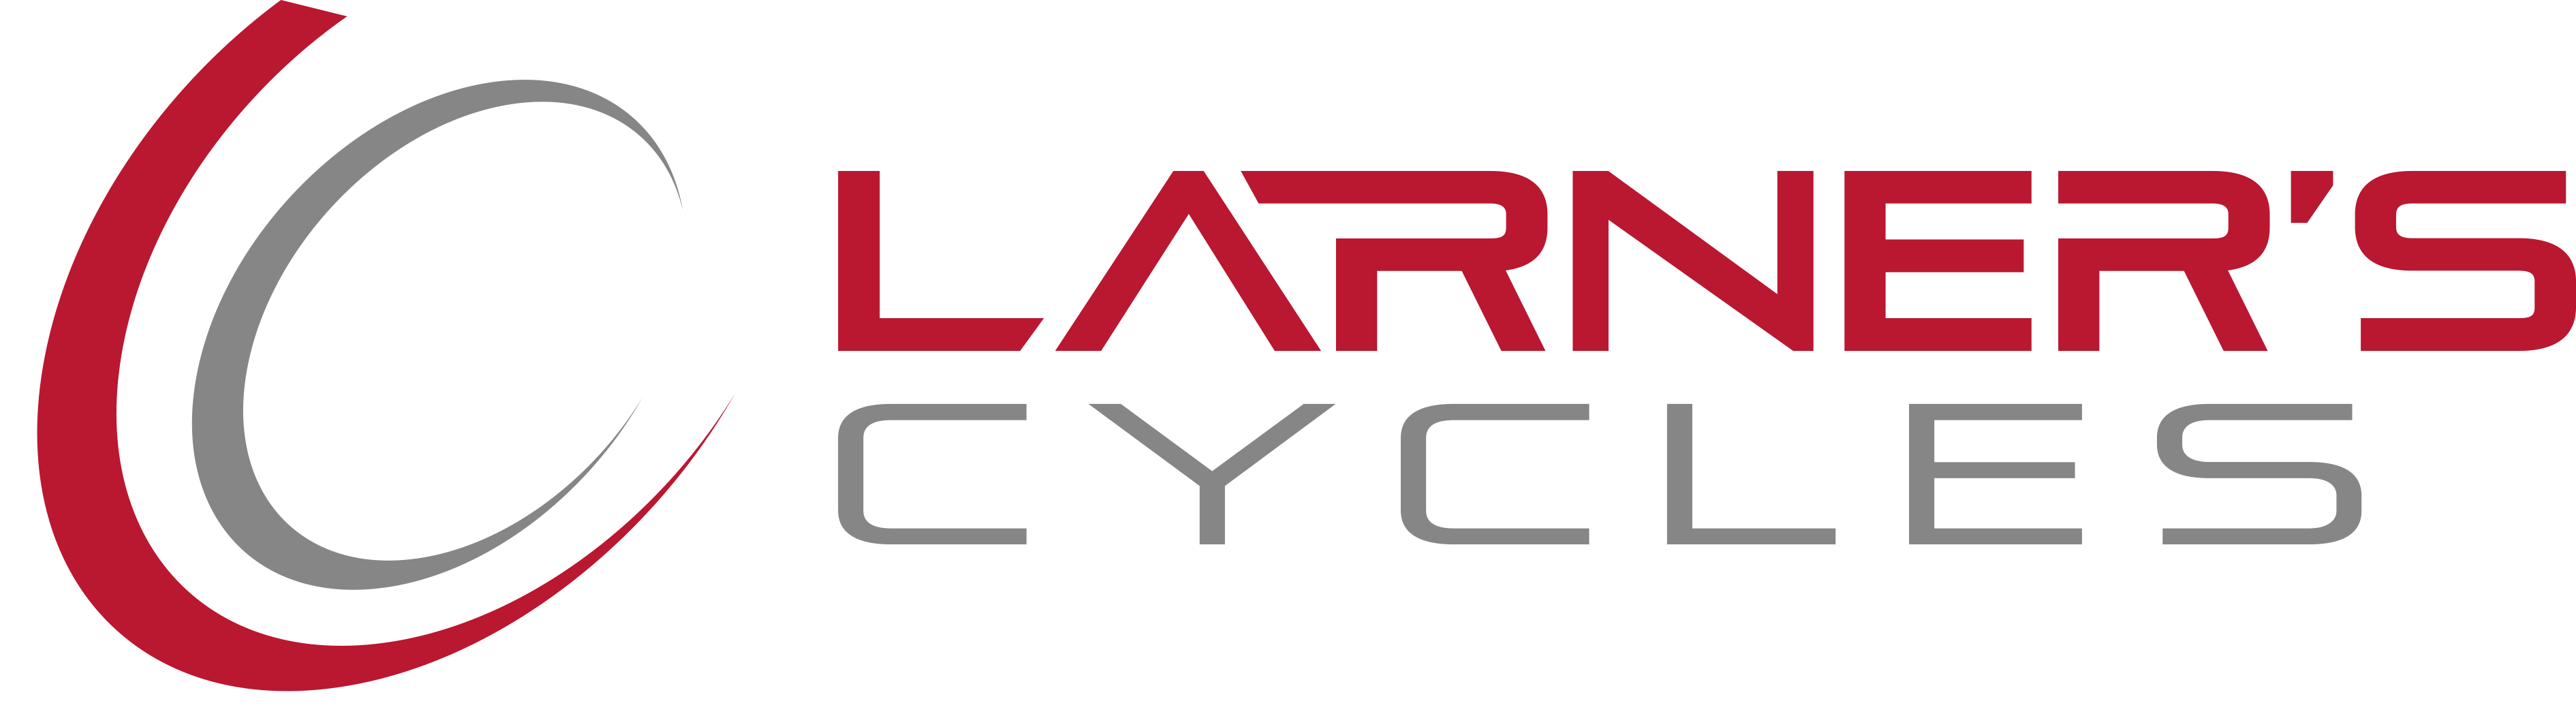 Larner's Cycles